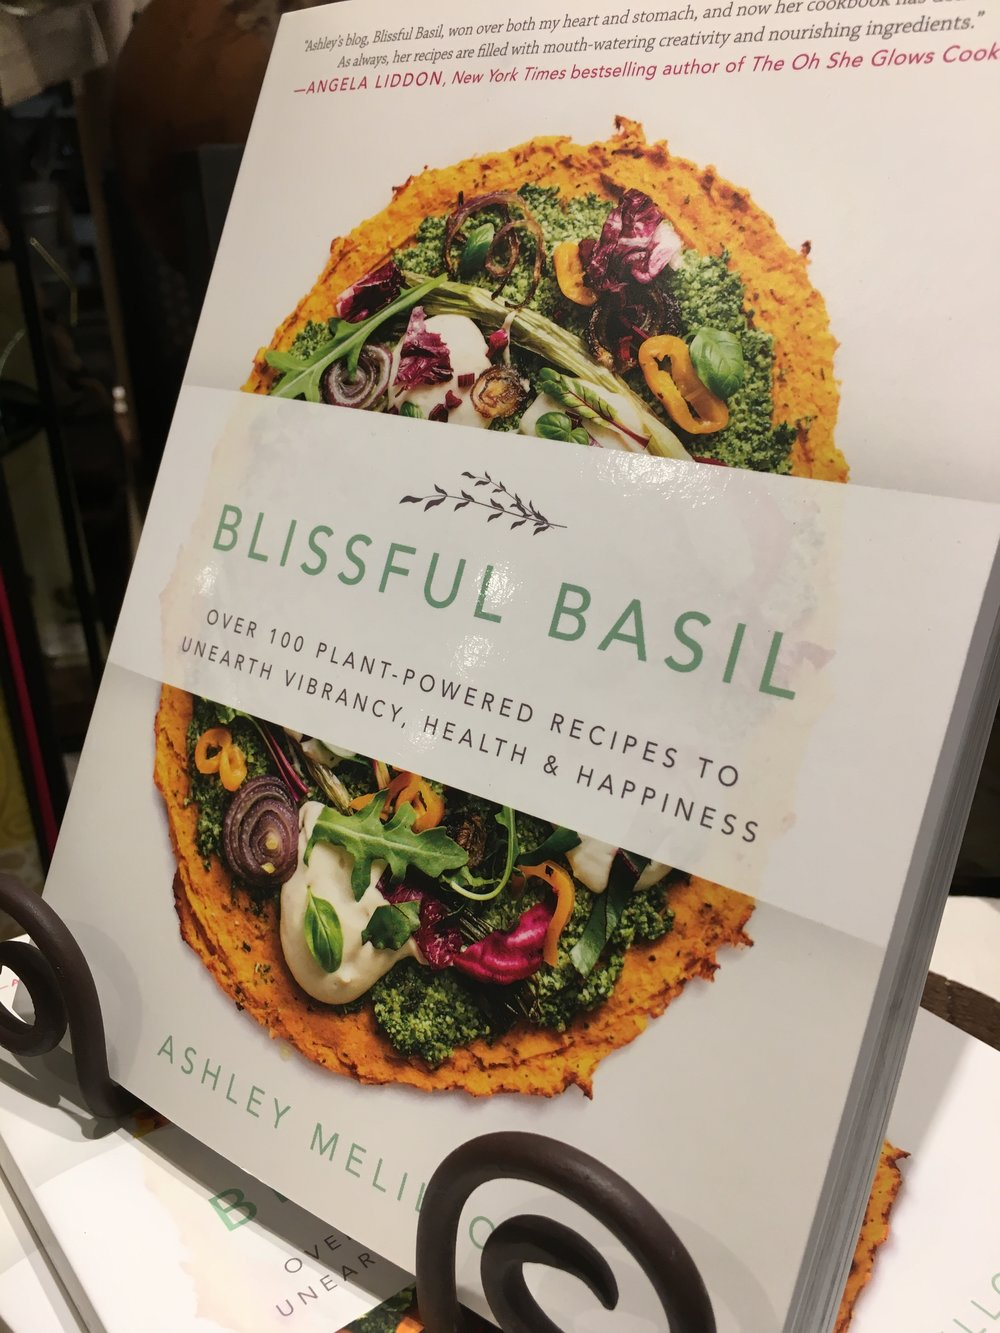 Blissful Basil cookbook by Ashley Melillo